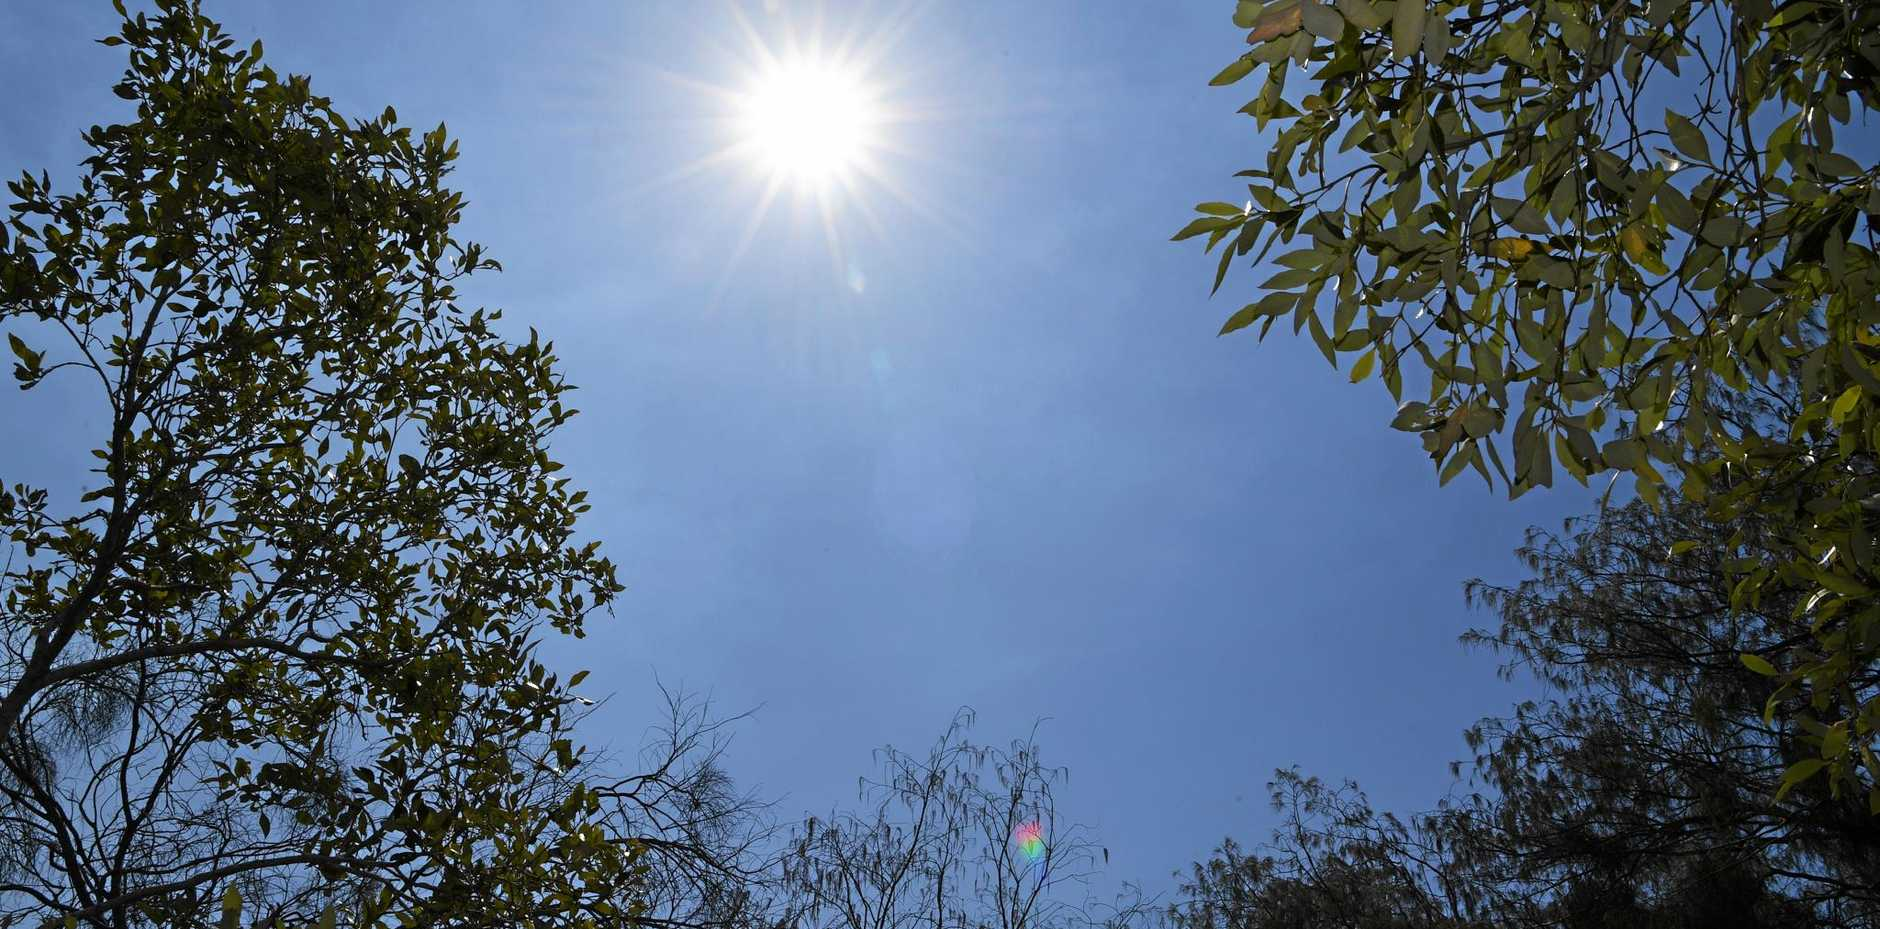 Searing heat inland and on the coast is set to test whole of eastern Australia.